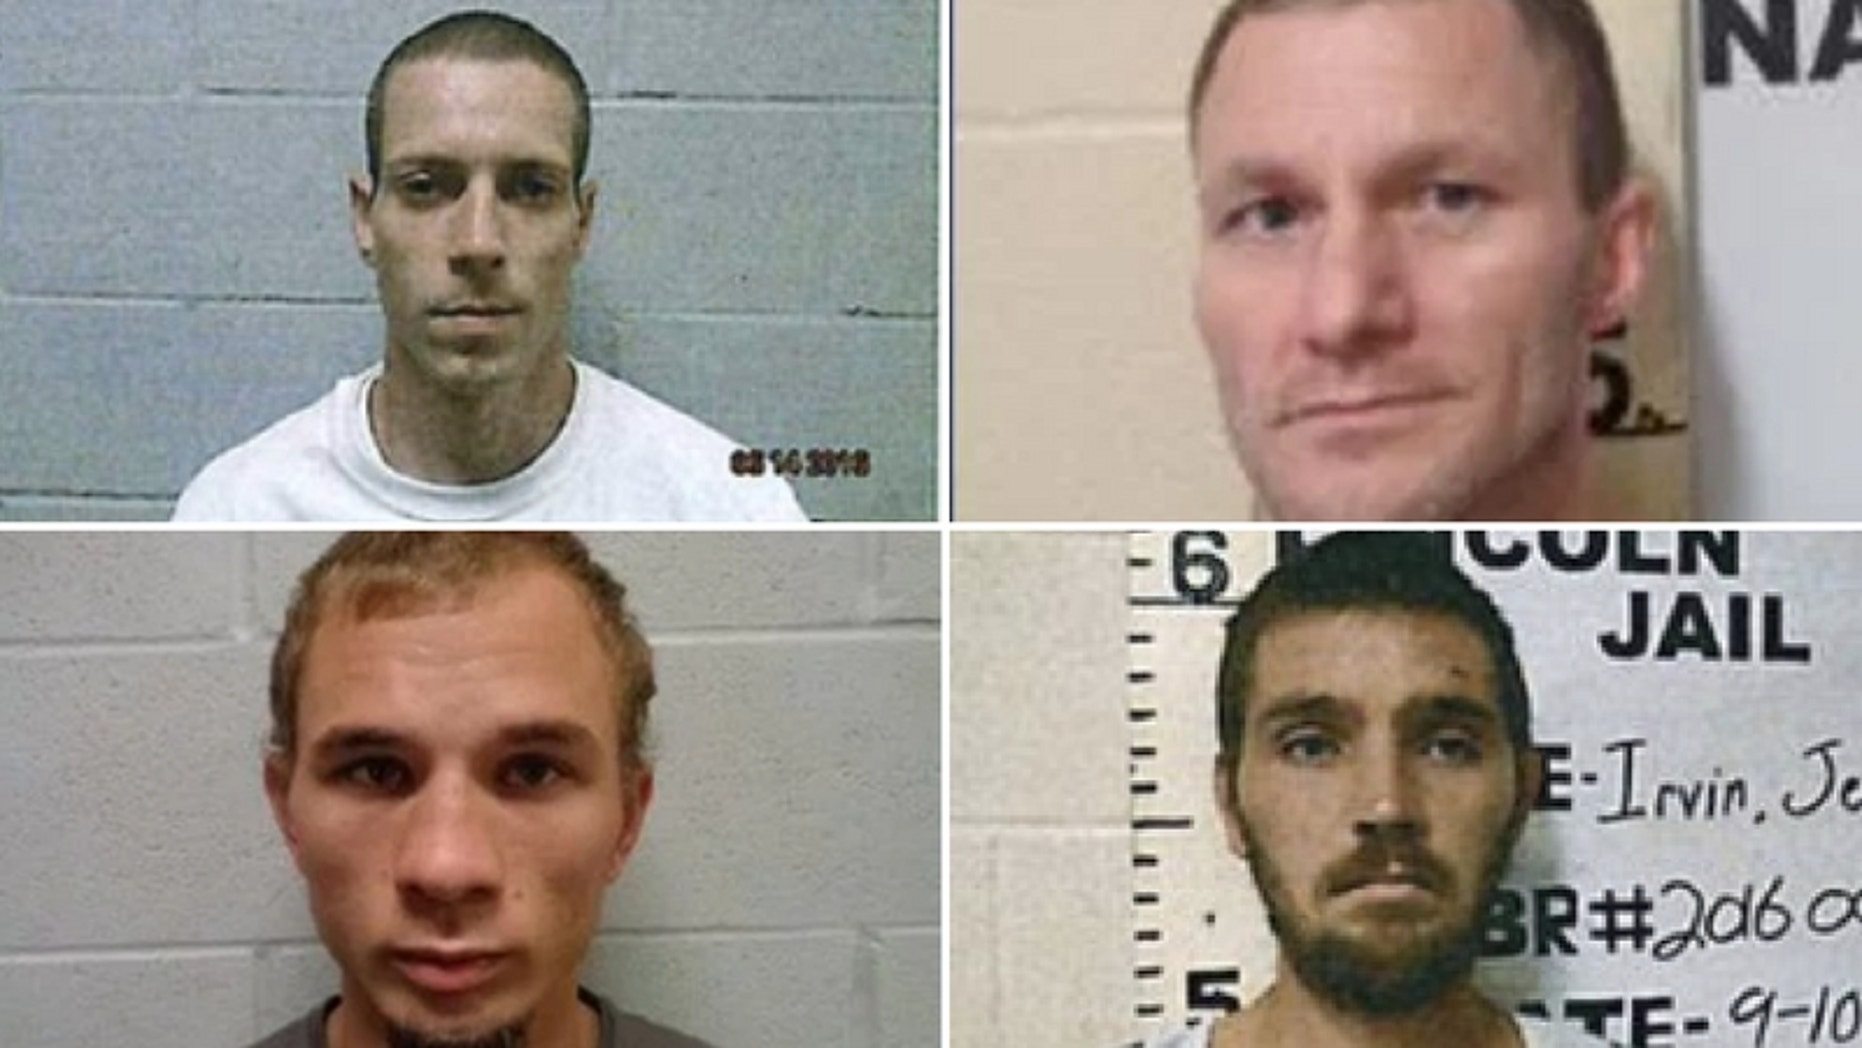 Oklahoma jail escape: 4 on the run, including murder suspect | Fox News